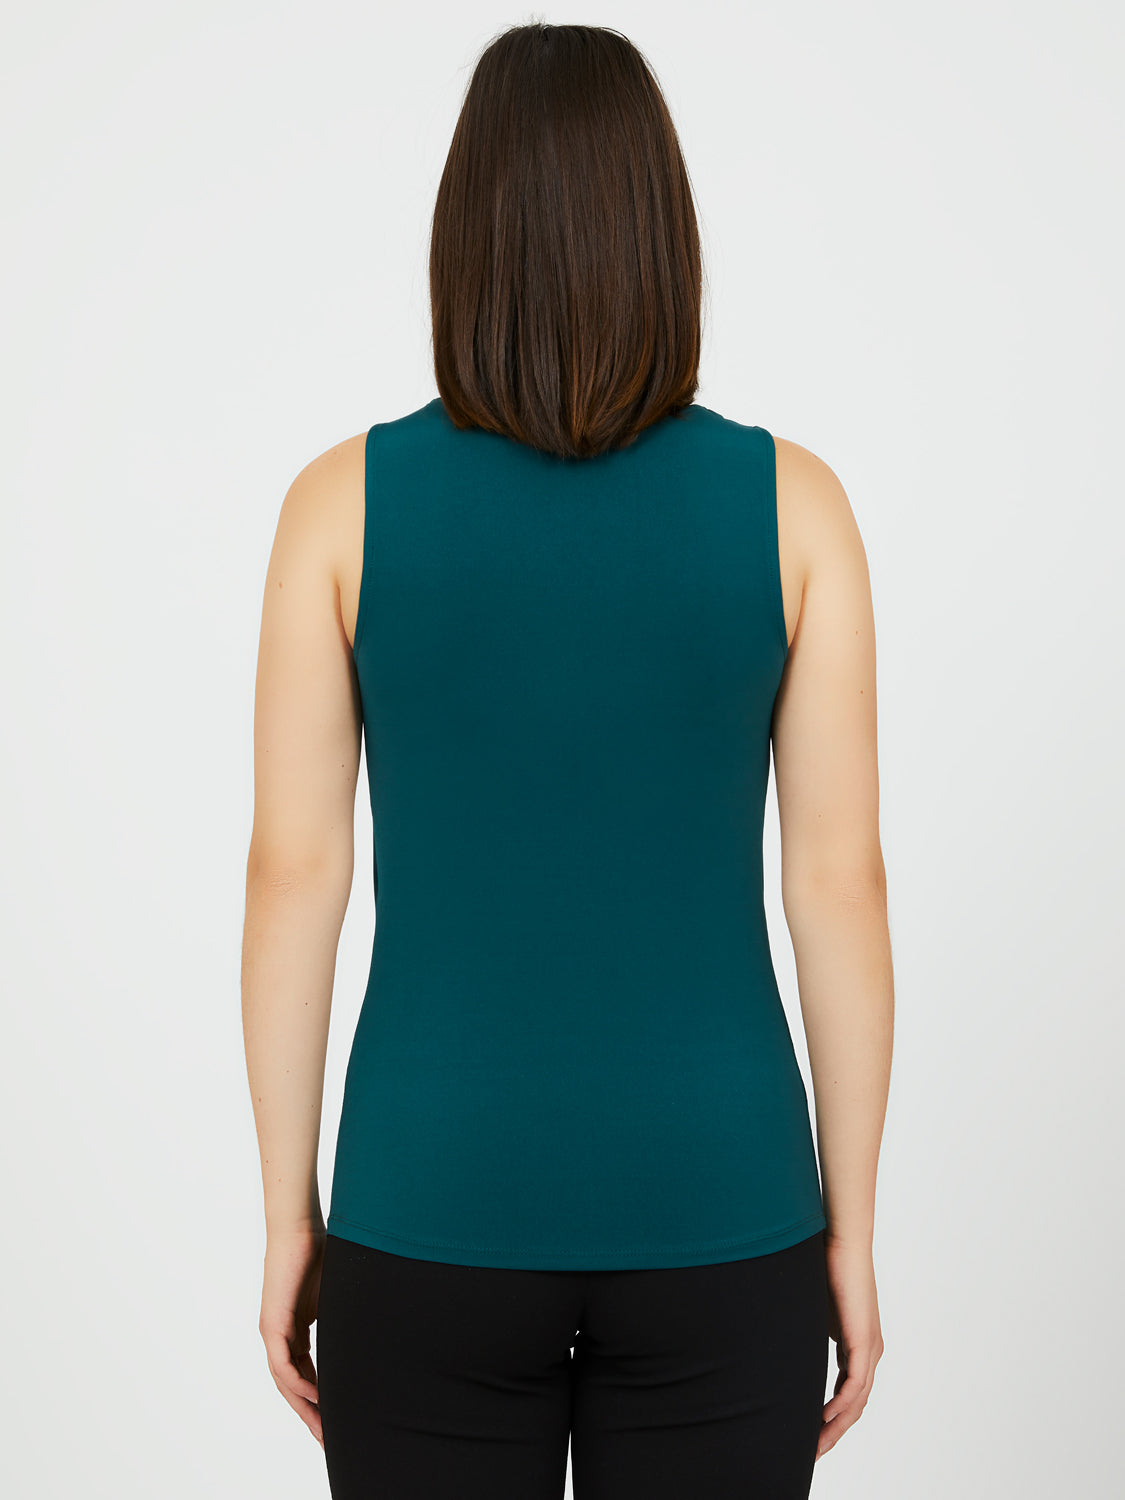 Sleeveless ITY Tank Top